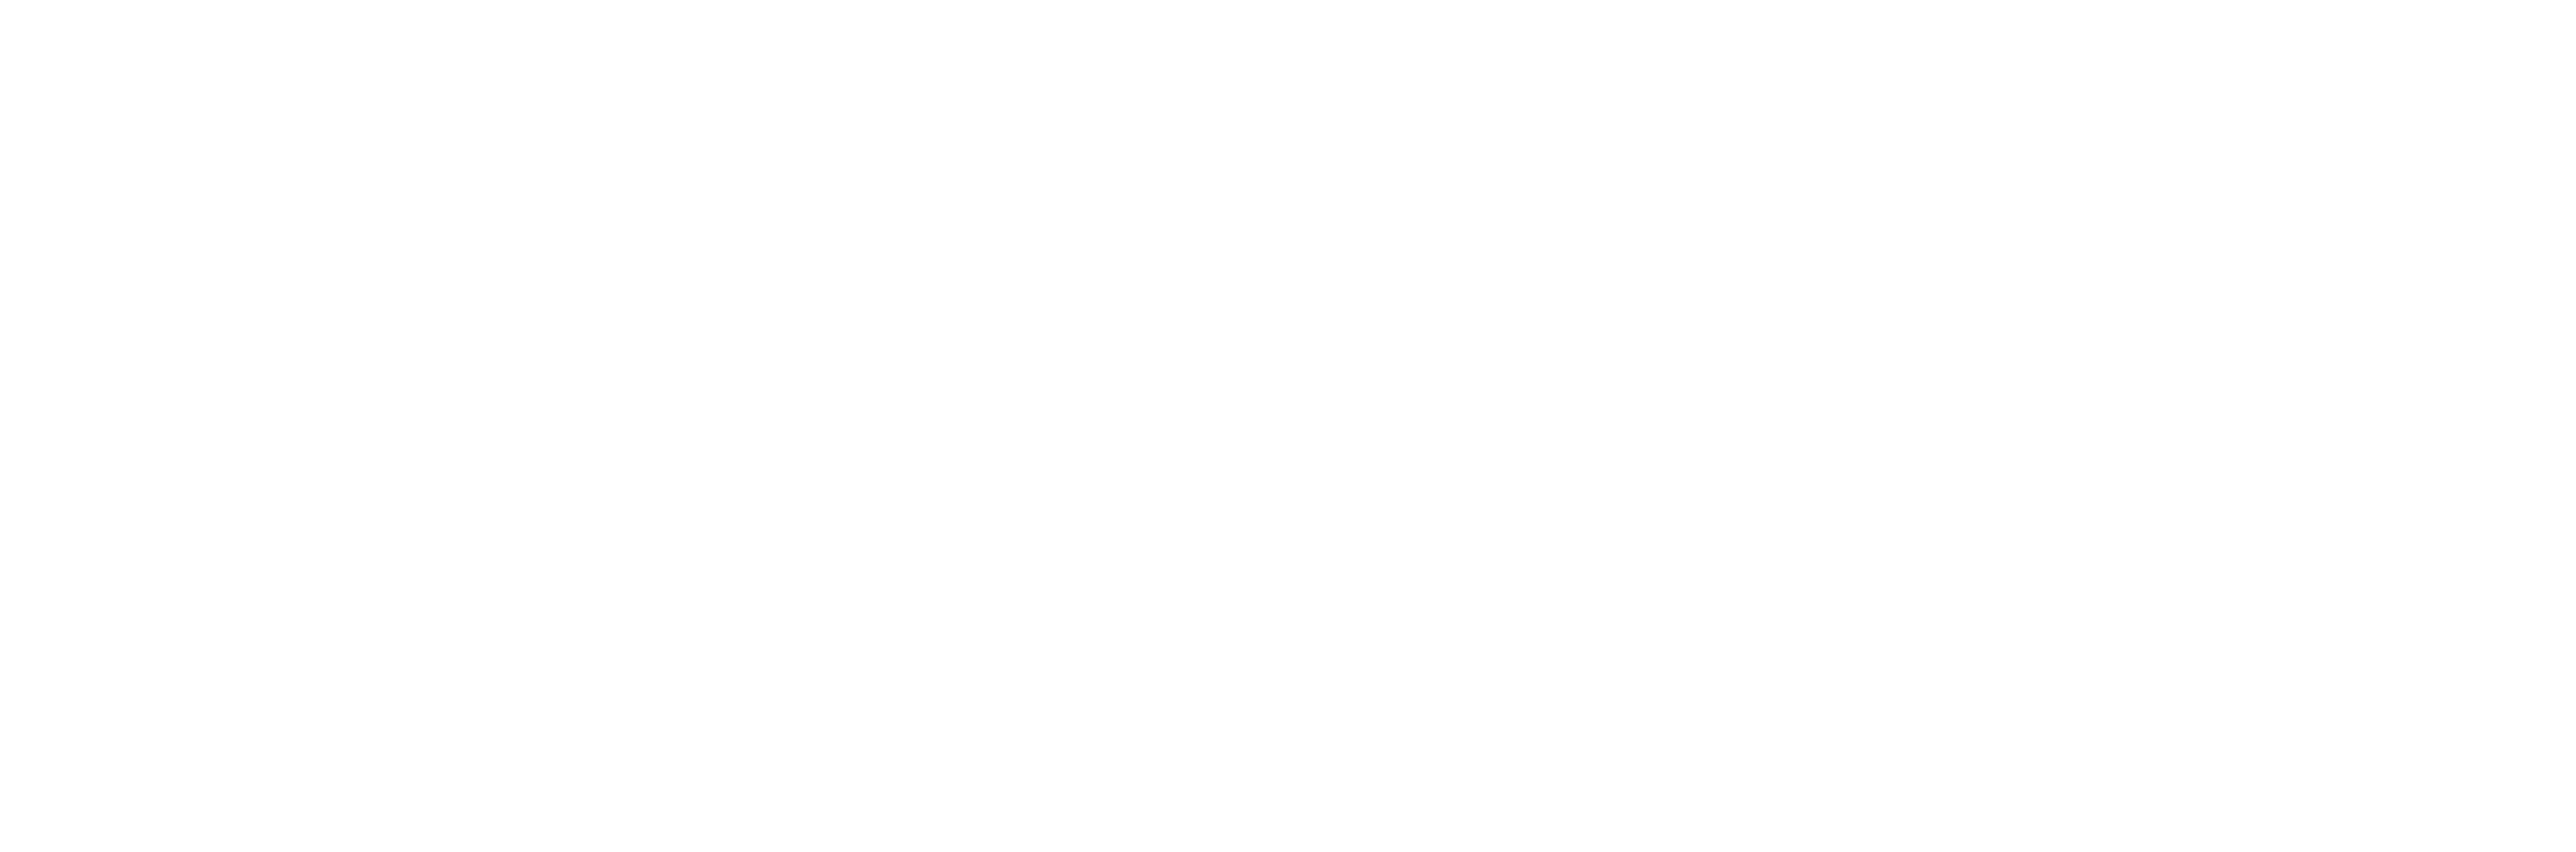 The White Isle A blog about Ibiza, its places, its people, its events and attractions.